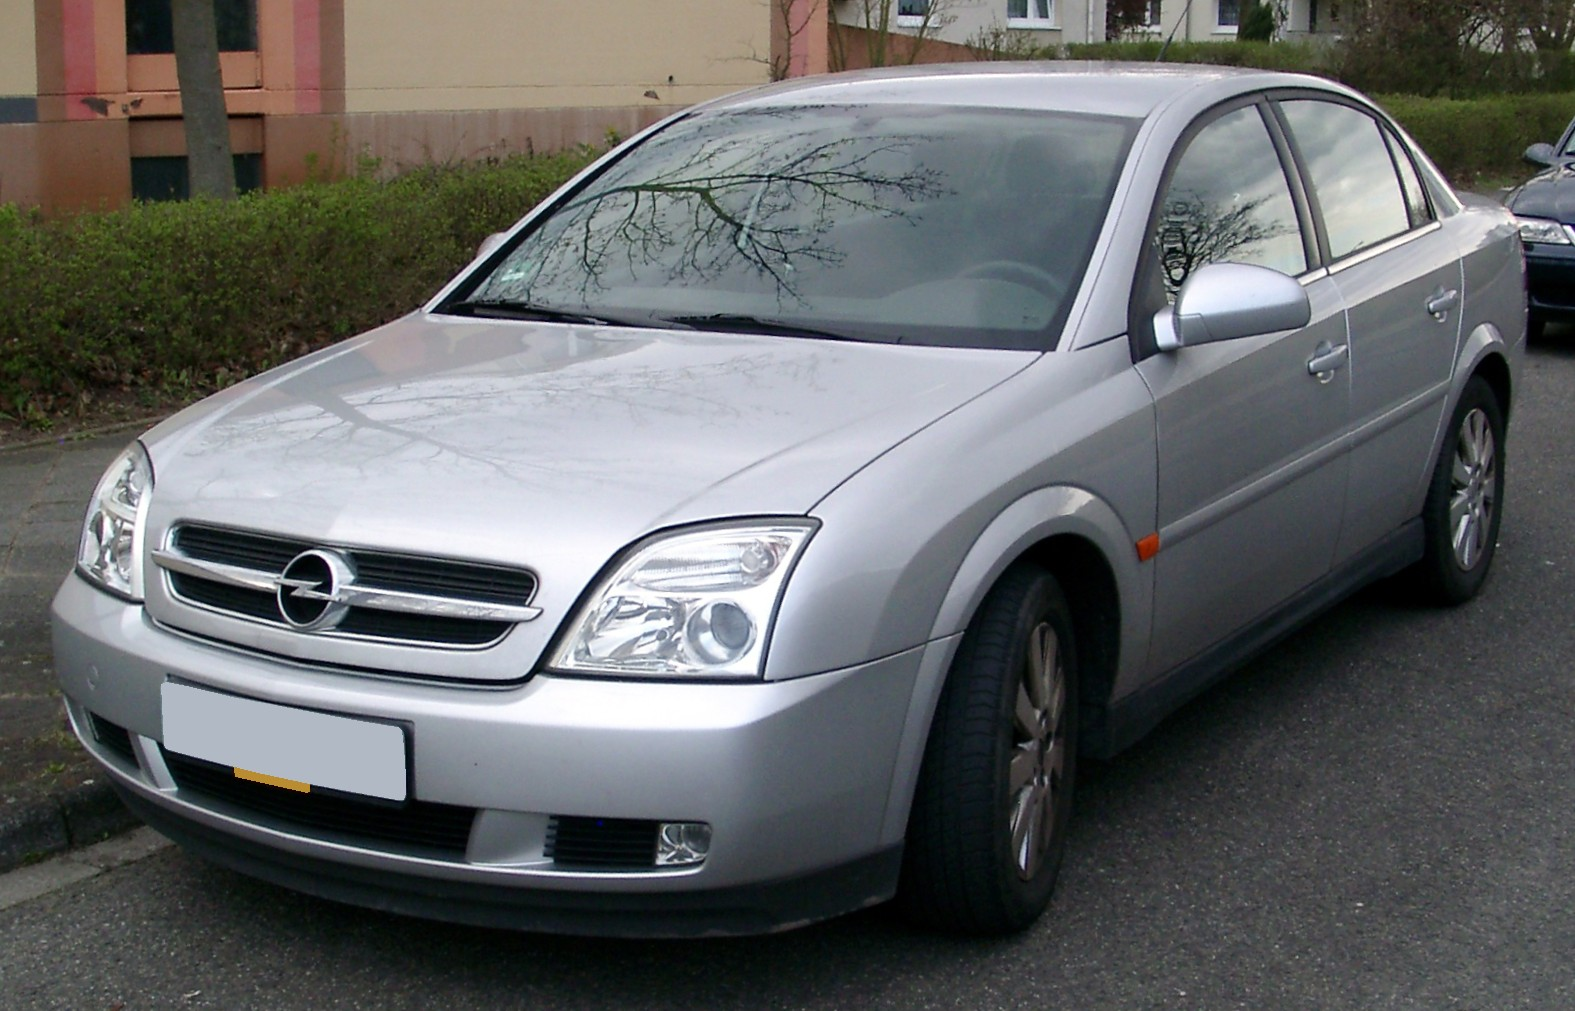 holden vectra (b) 2003